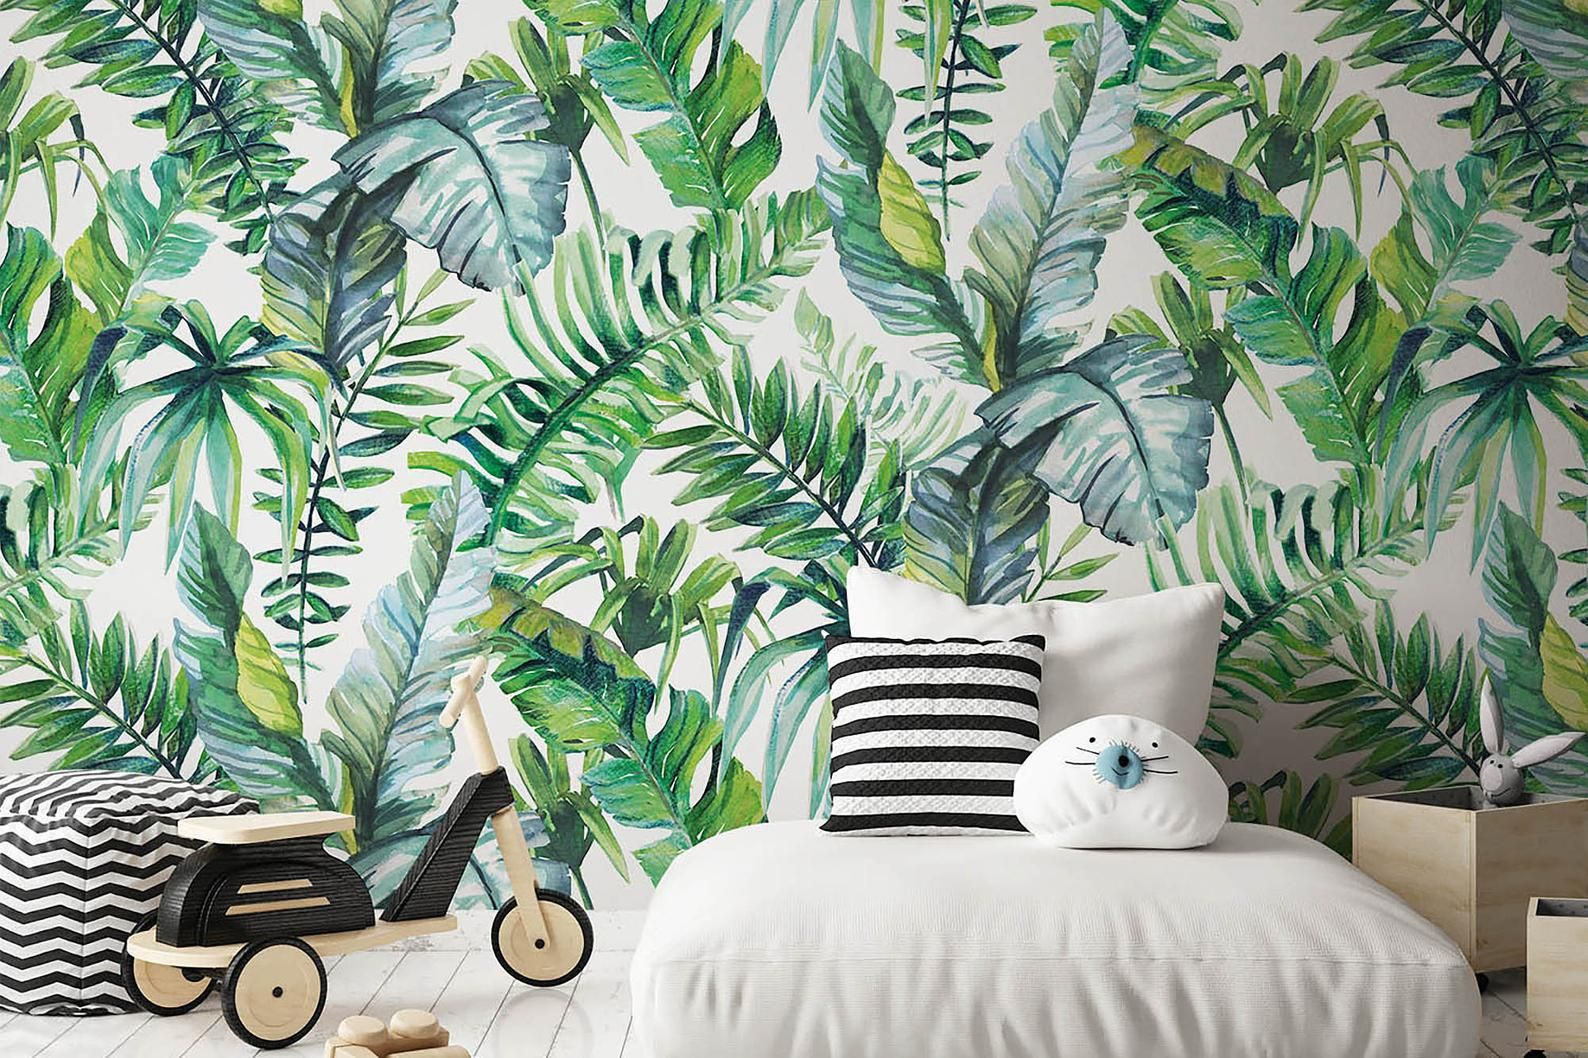 Tropical Leaf Removable Wallpaper Peel And Stick Forest Etsy Removable Wallpaper Jungle Wall Stickers Tropical Leaves